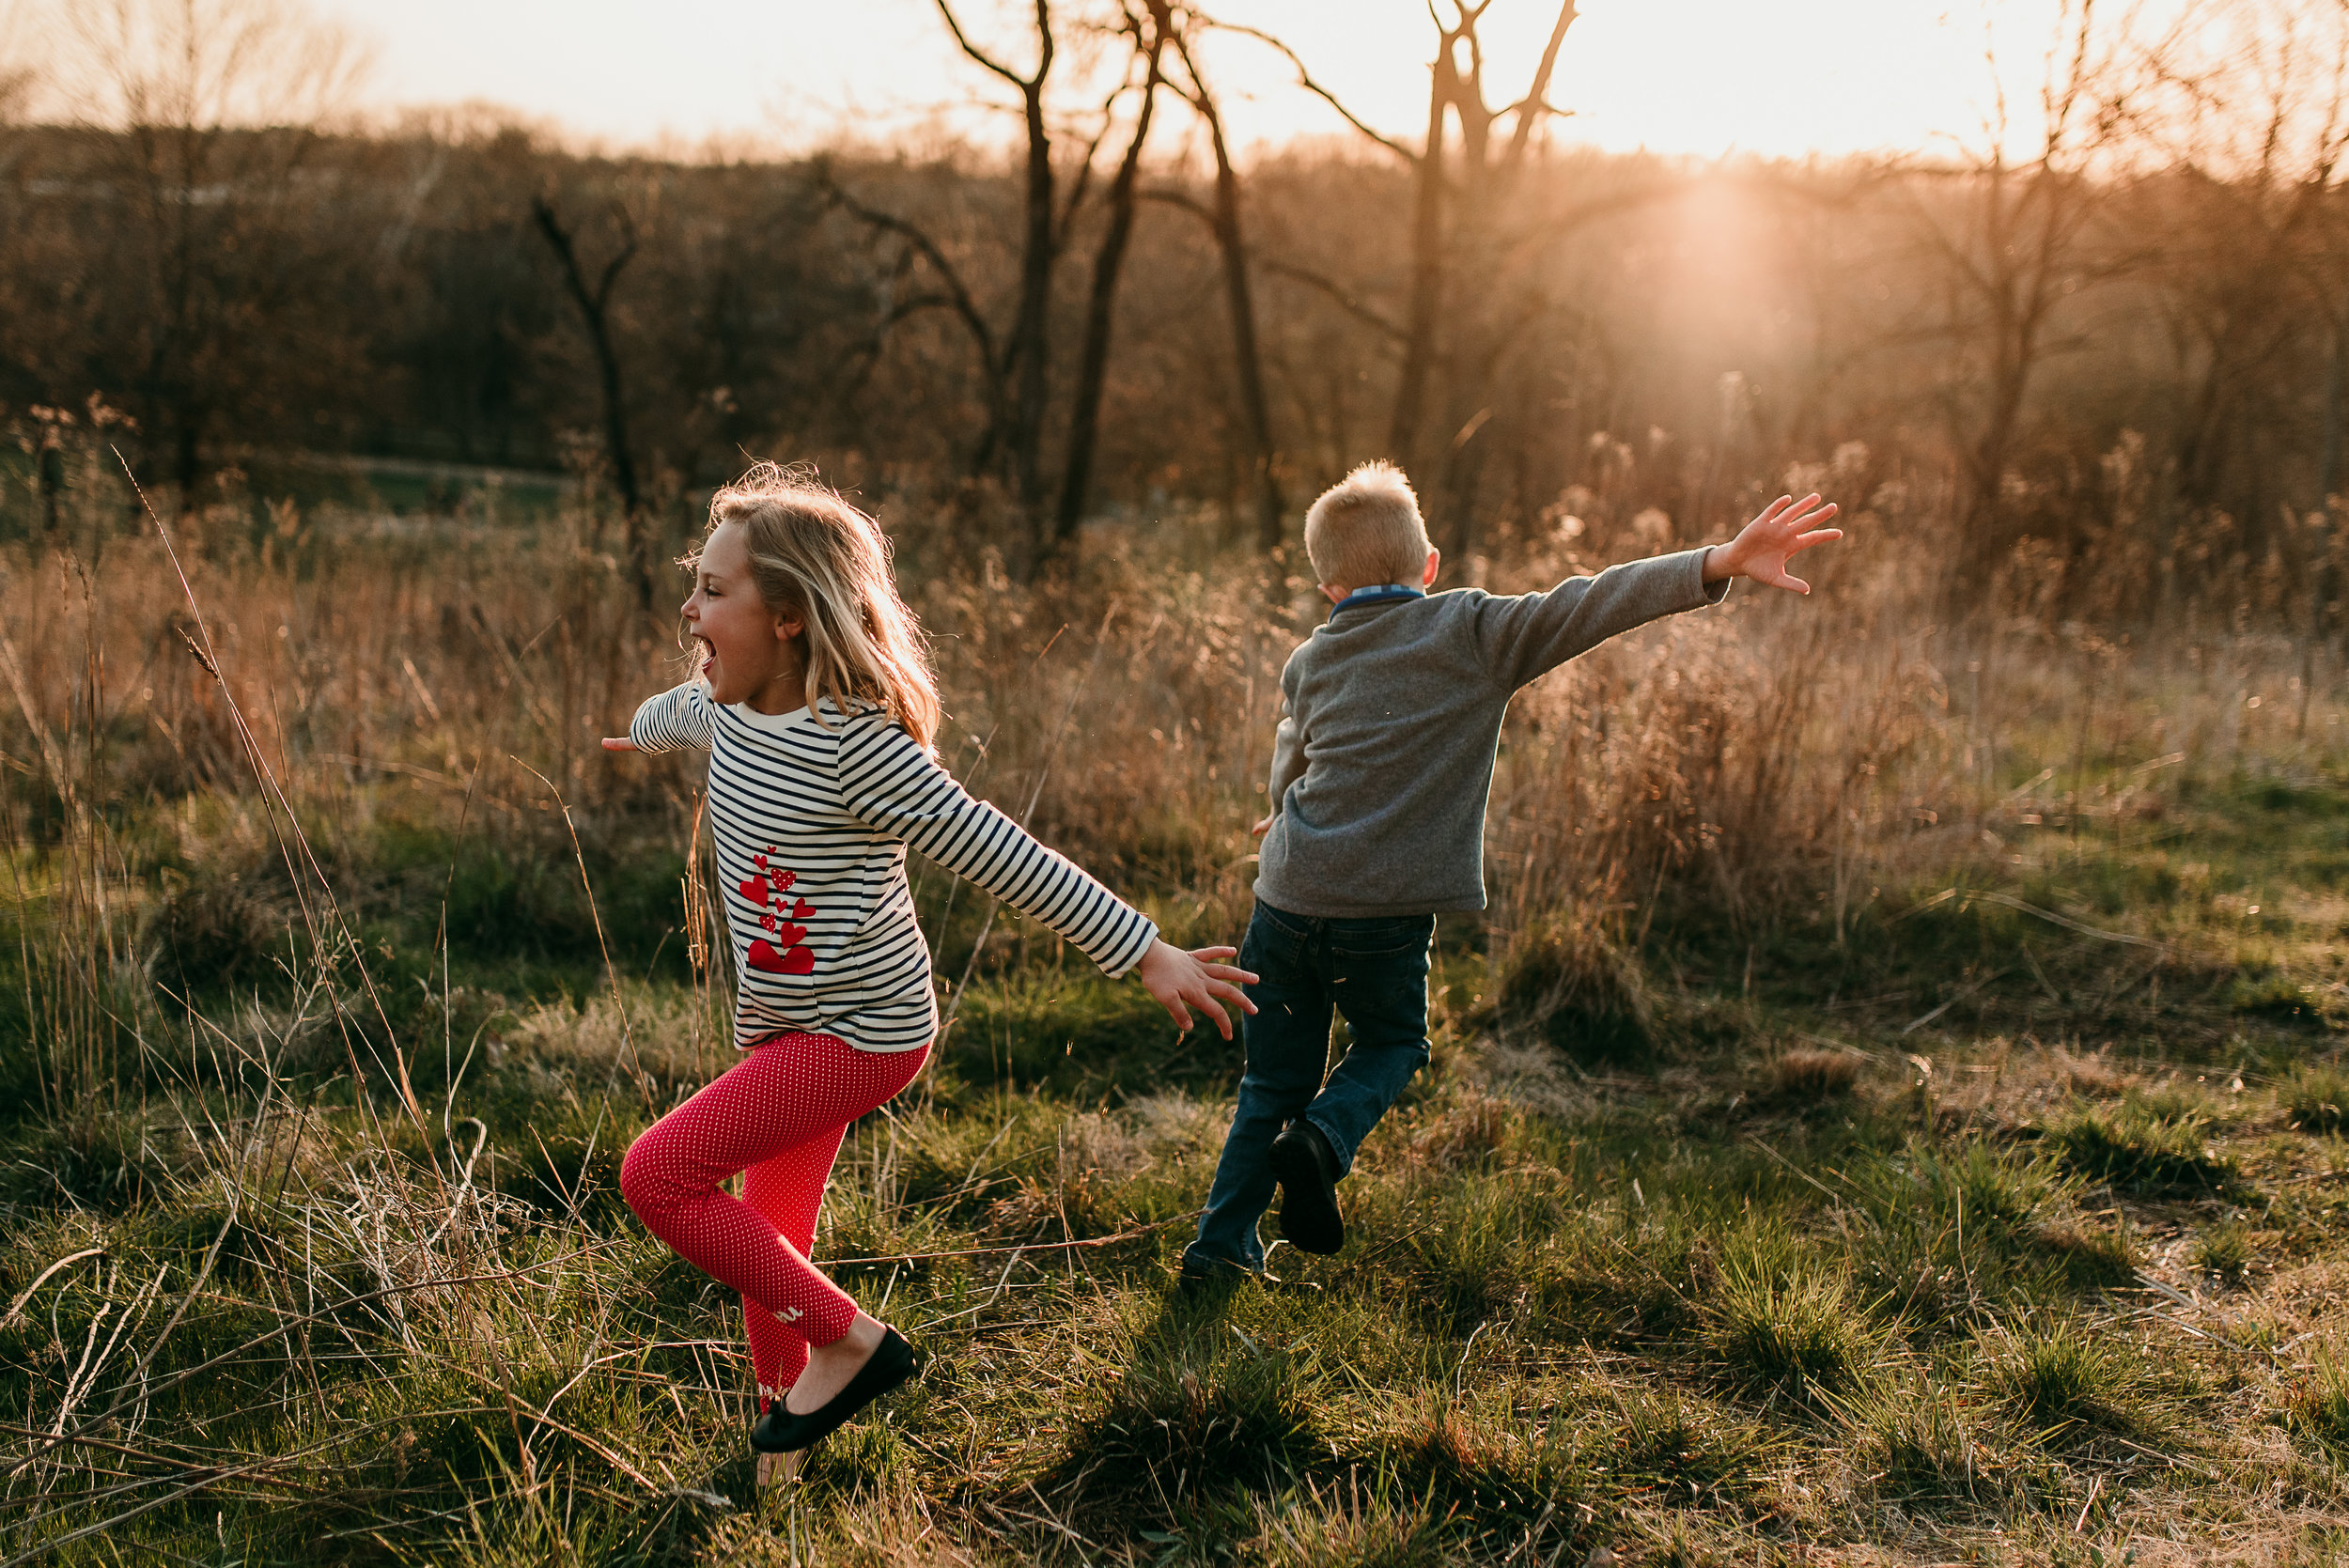 siblings dancing together in sunset light